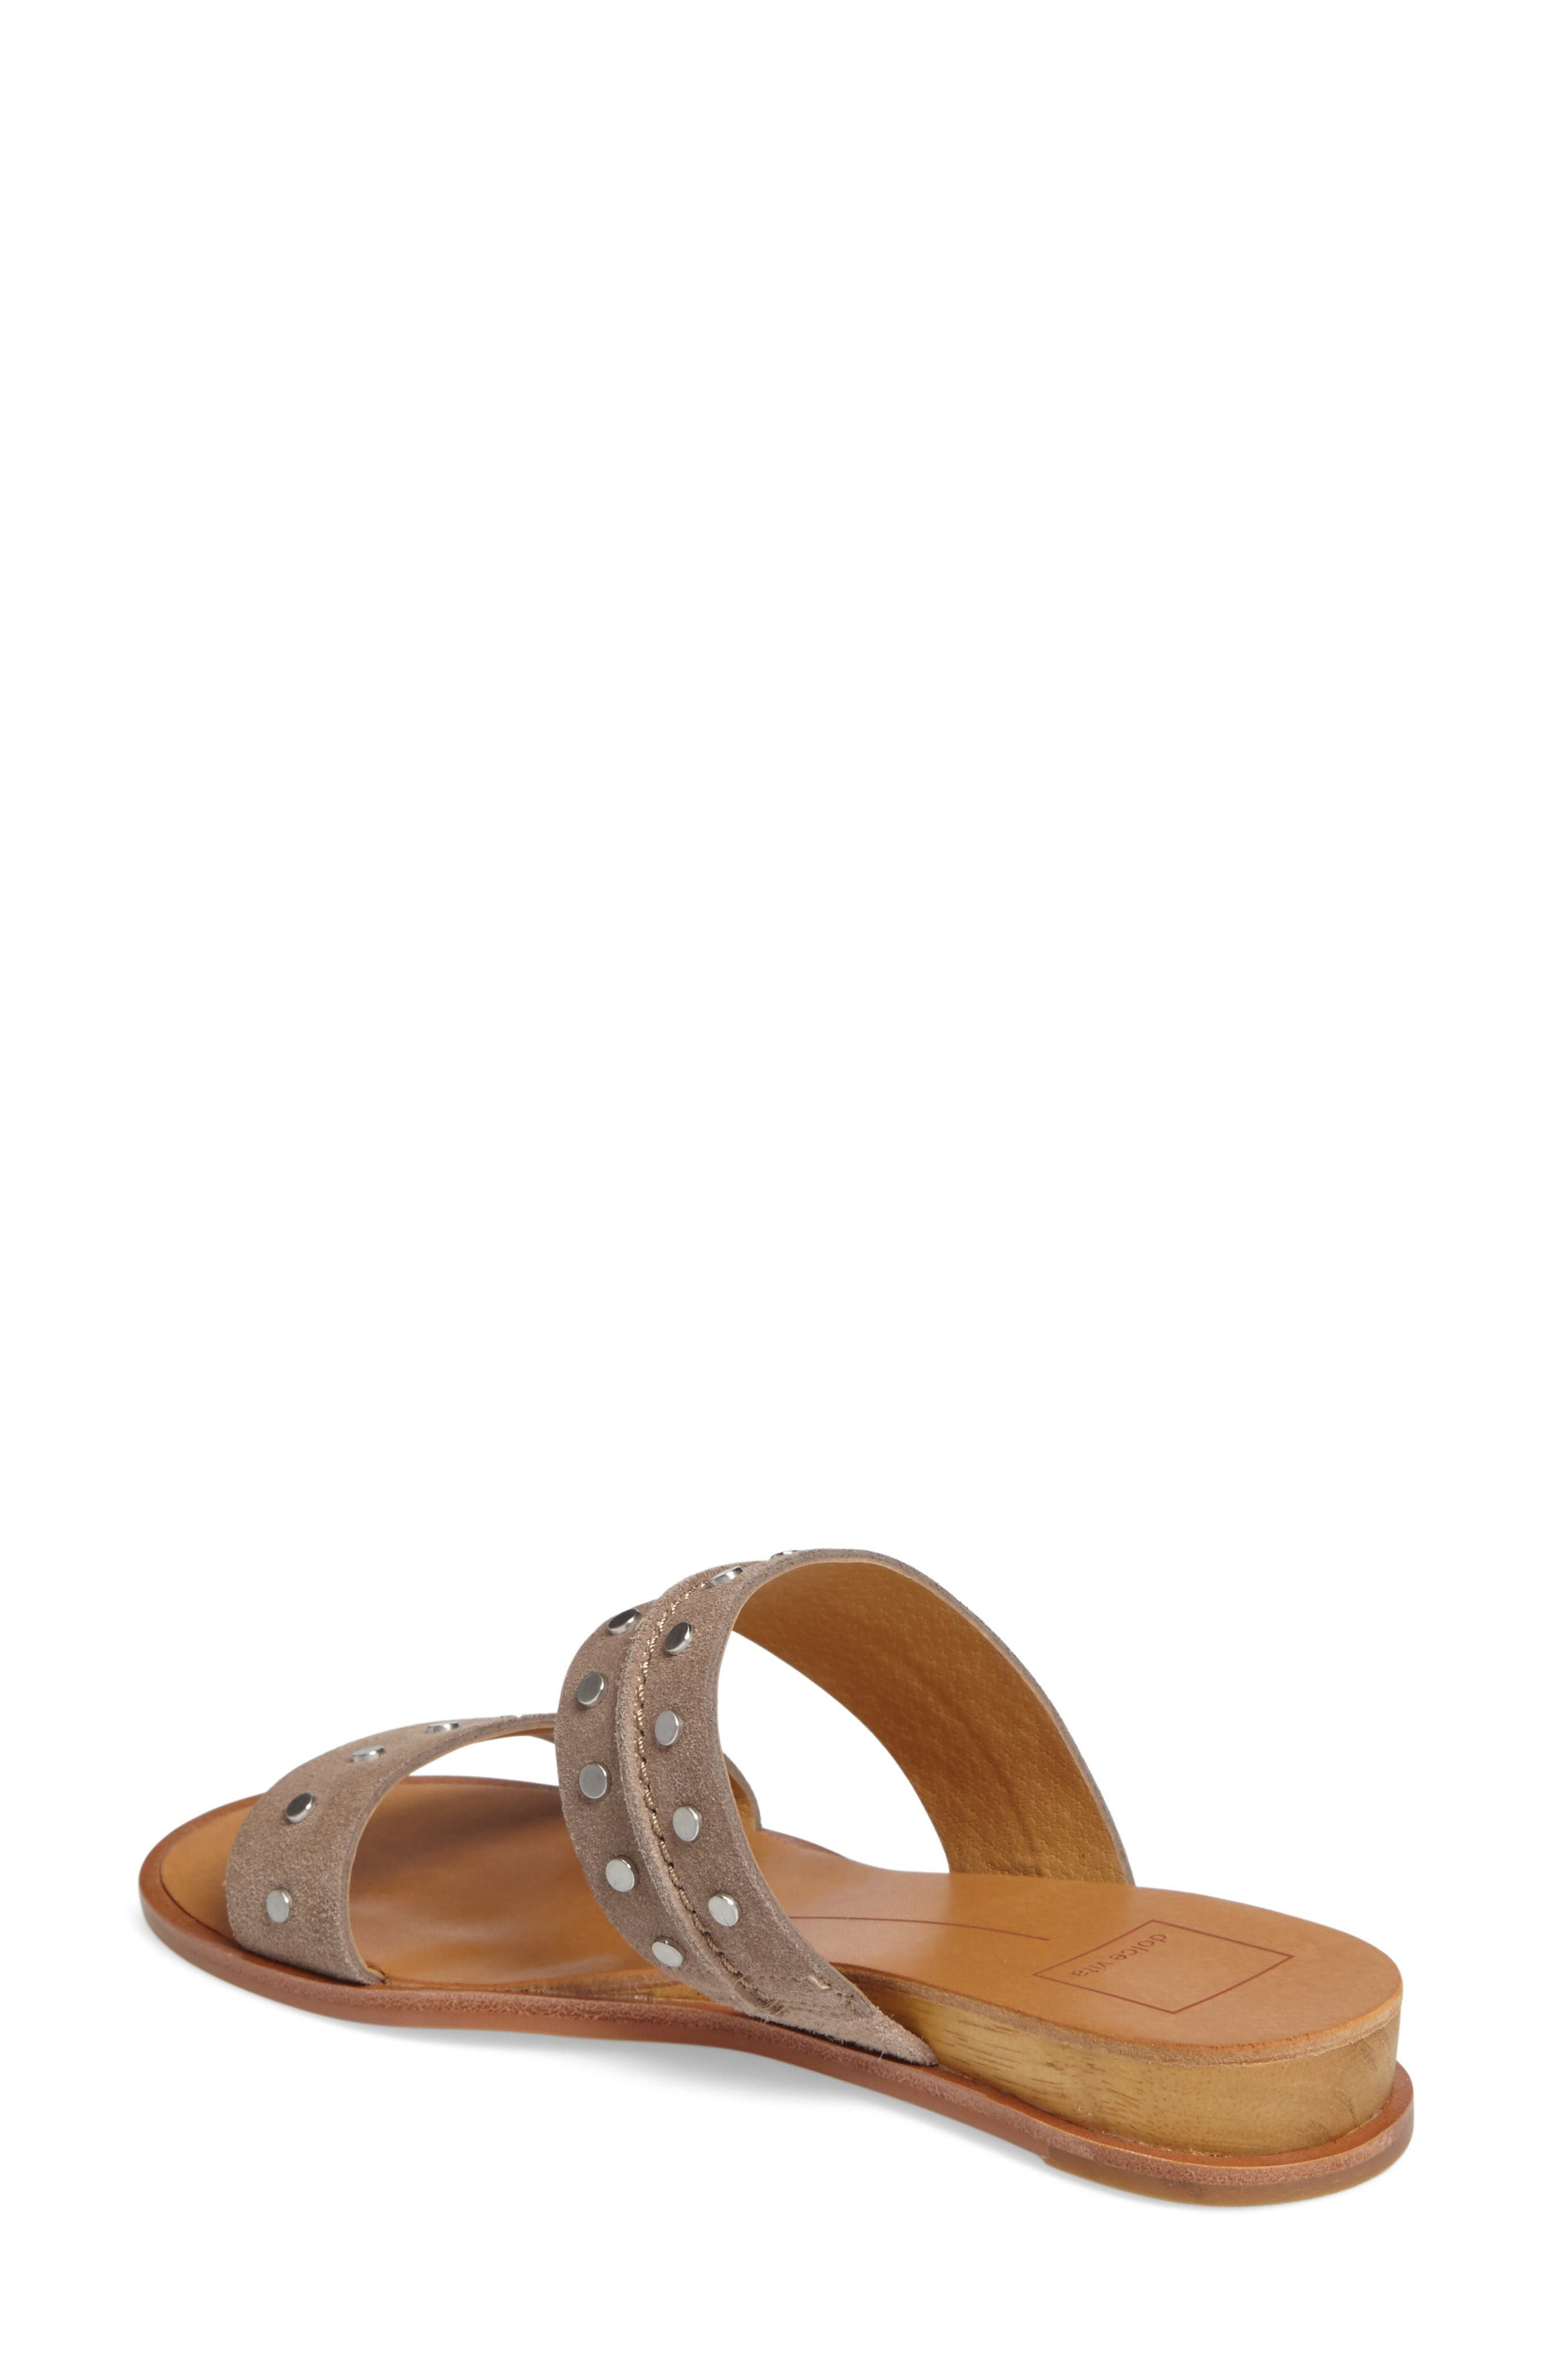 Pacey Studded Wedge Sandal,                             Alternate thumbnail 2, color,                             Taupe Suede